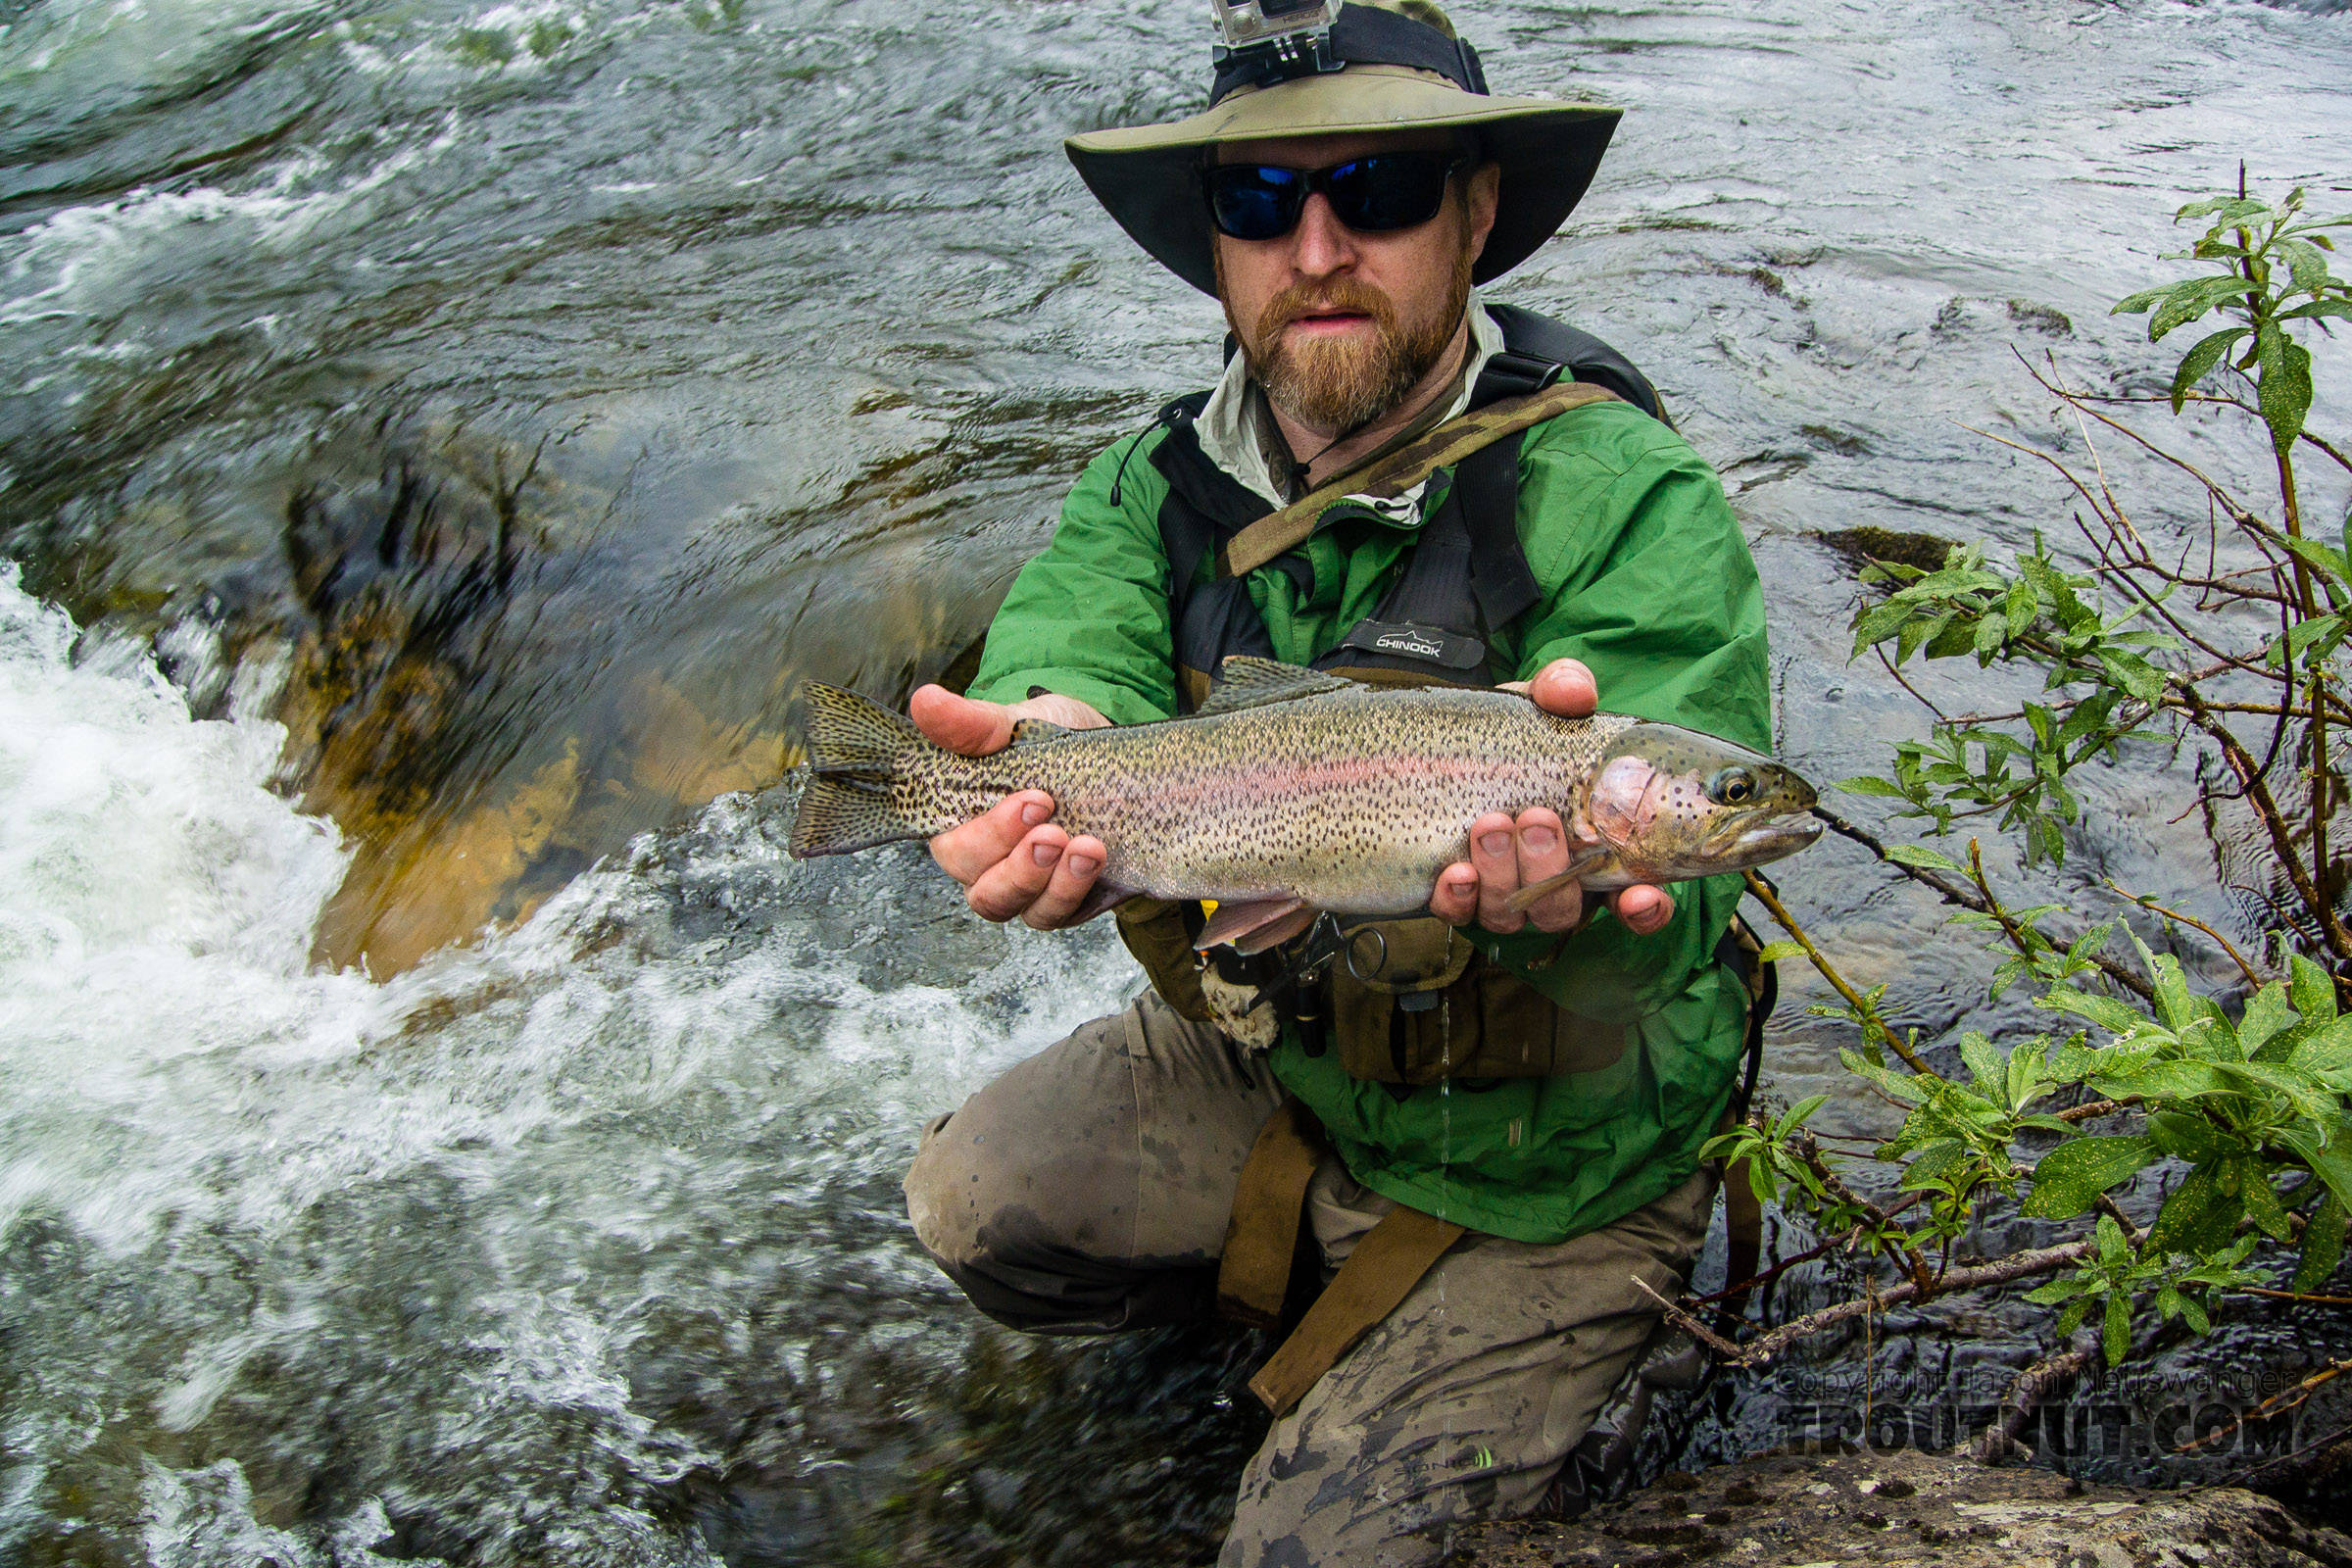 The fish really turned on Friday morning, and I caught this very pretty 17-incher From the Gulkana River in Alaska.